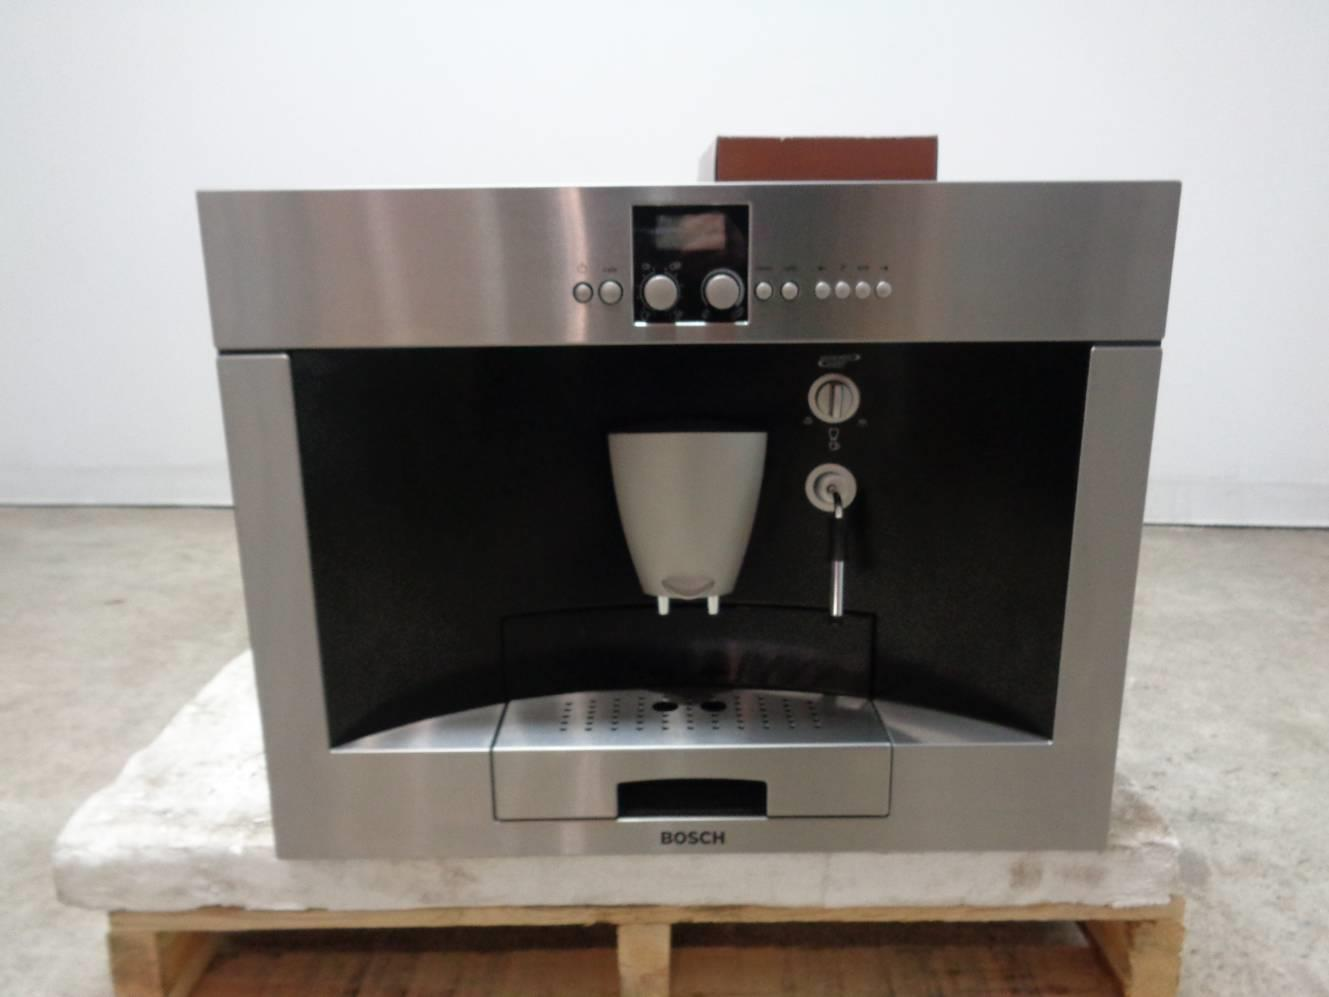 Built In Coffee Maker Bosch : BOSCH TKN68E75UC 24